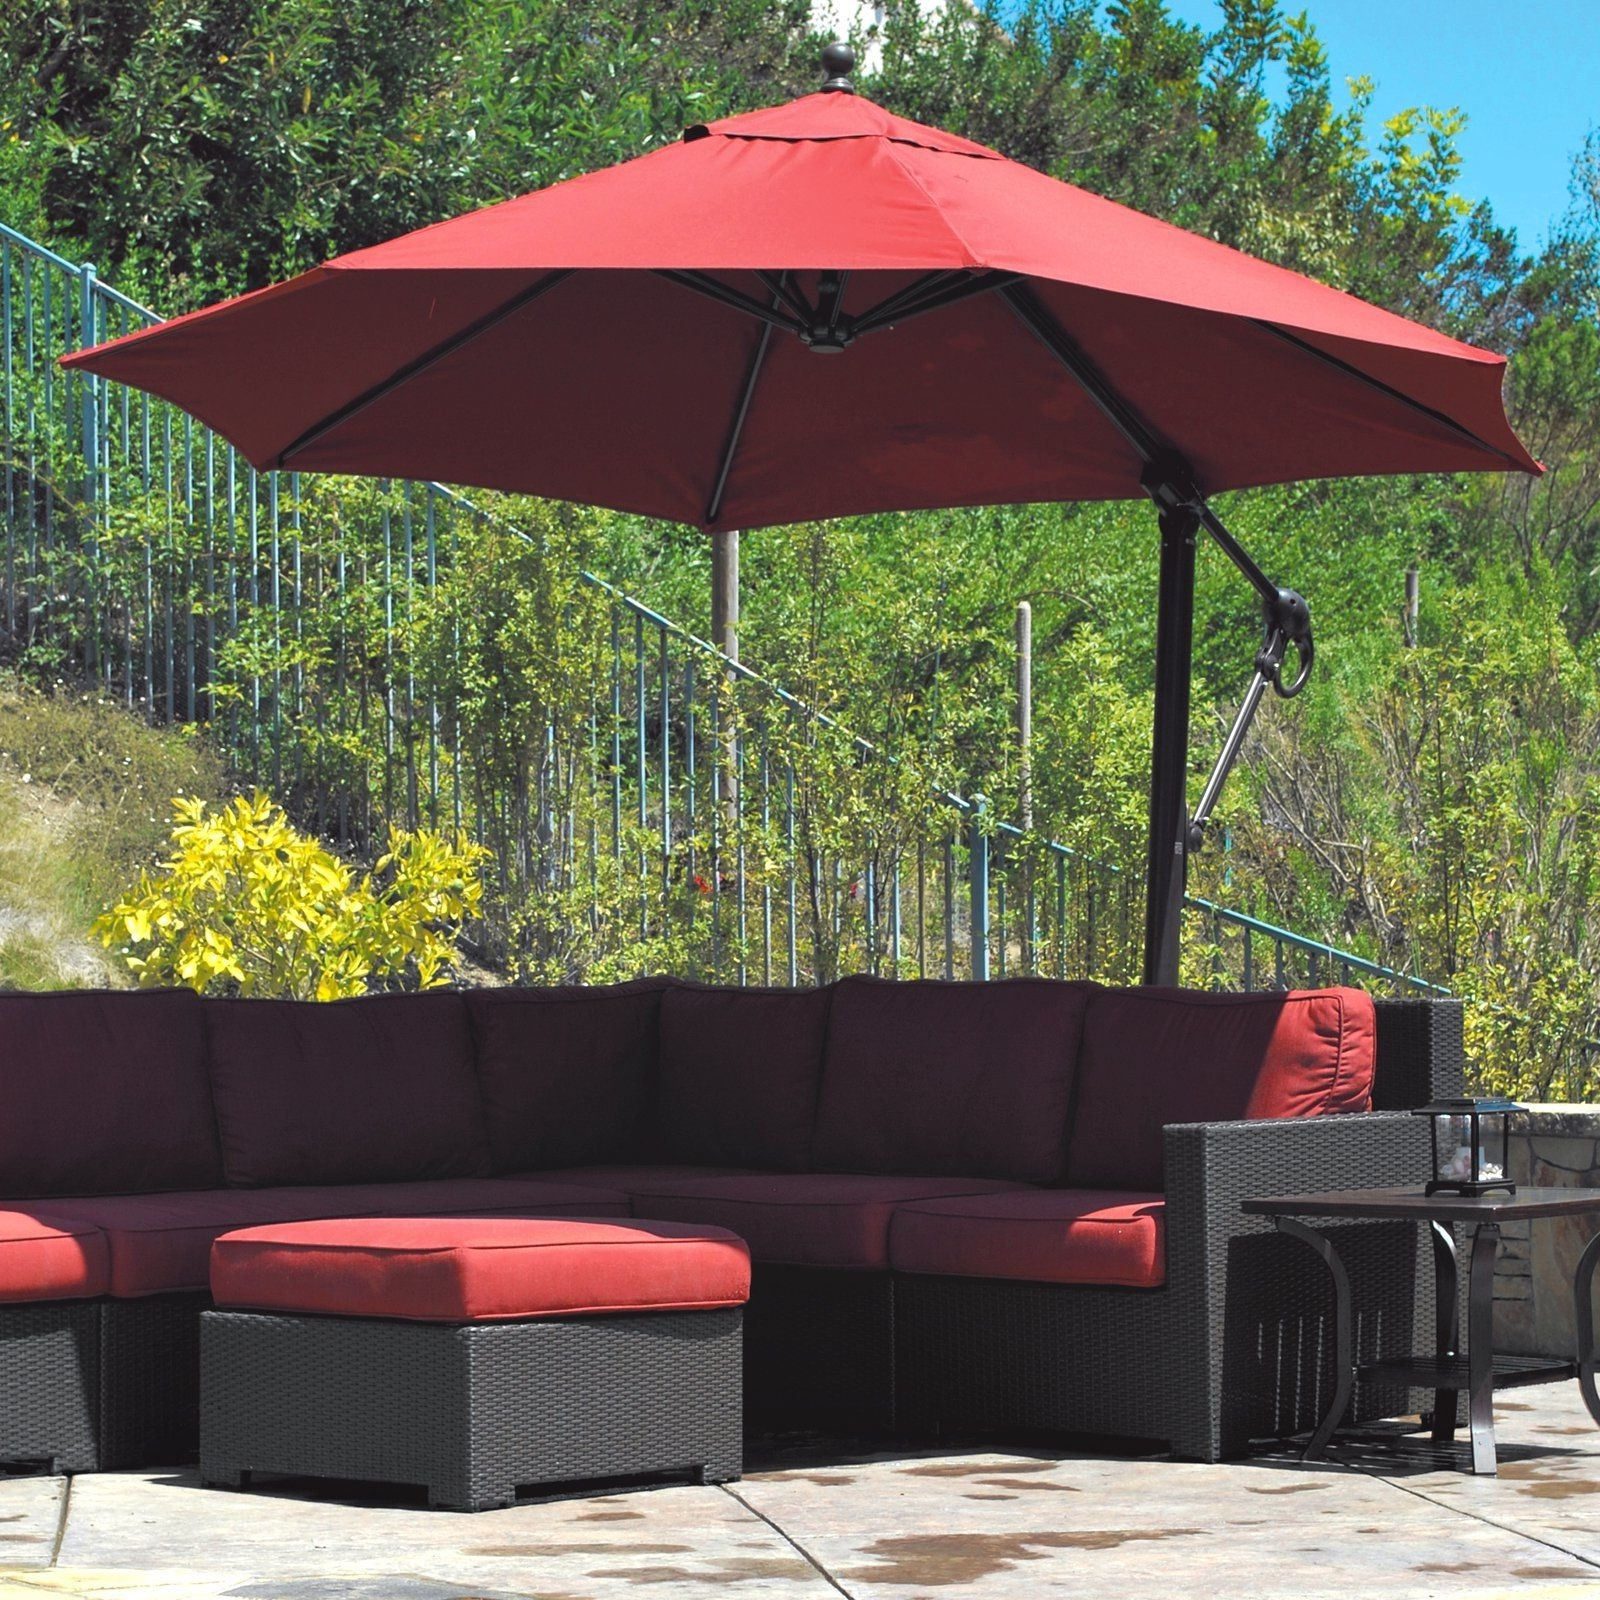 Most Recent Lowes Offset Patio Umbrellas Regarding Lowes Patio Umbrellas Luxury Umbrella Sale Elegant Cool – Home (View 18 of 20)